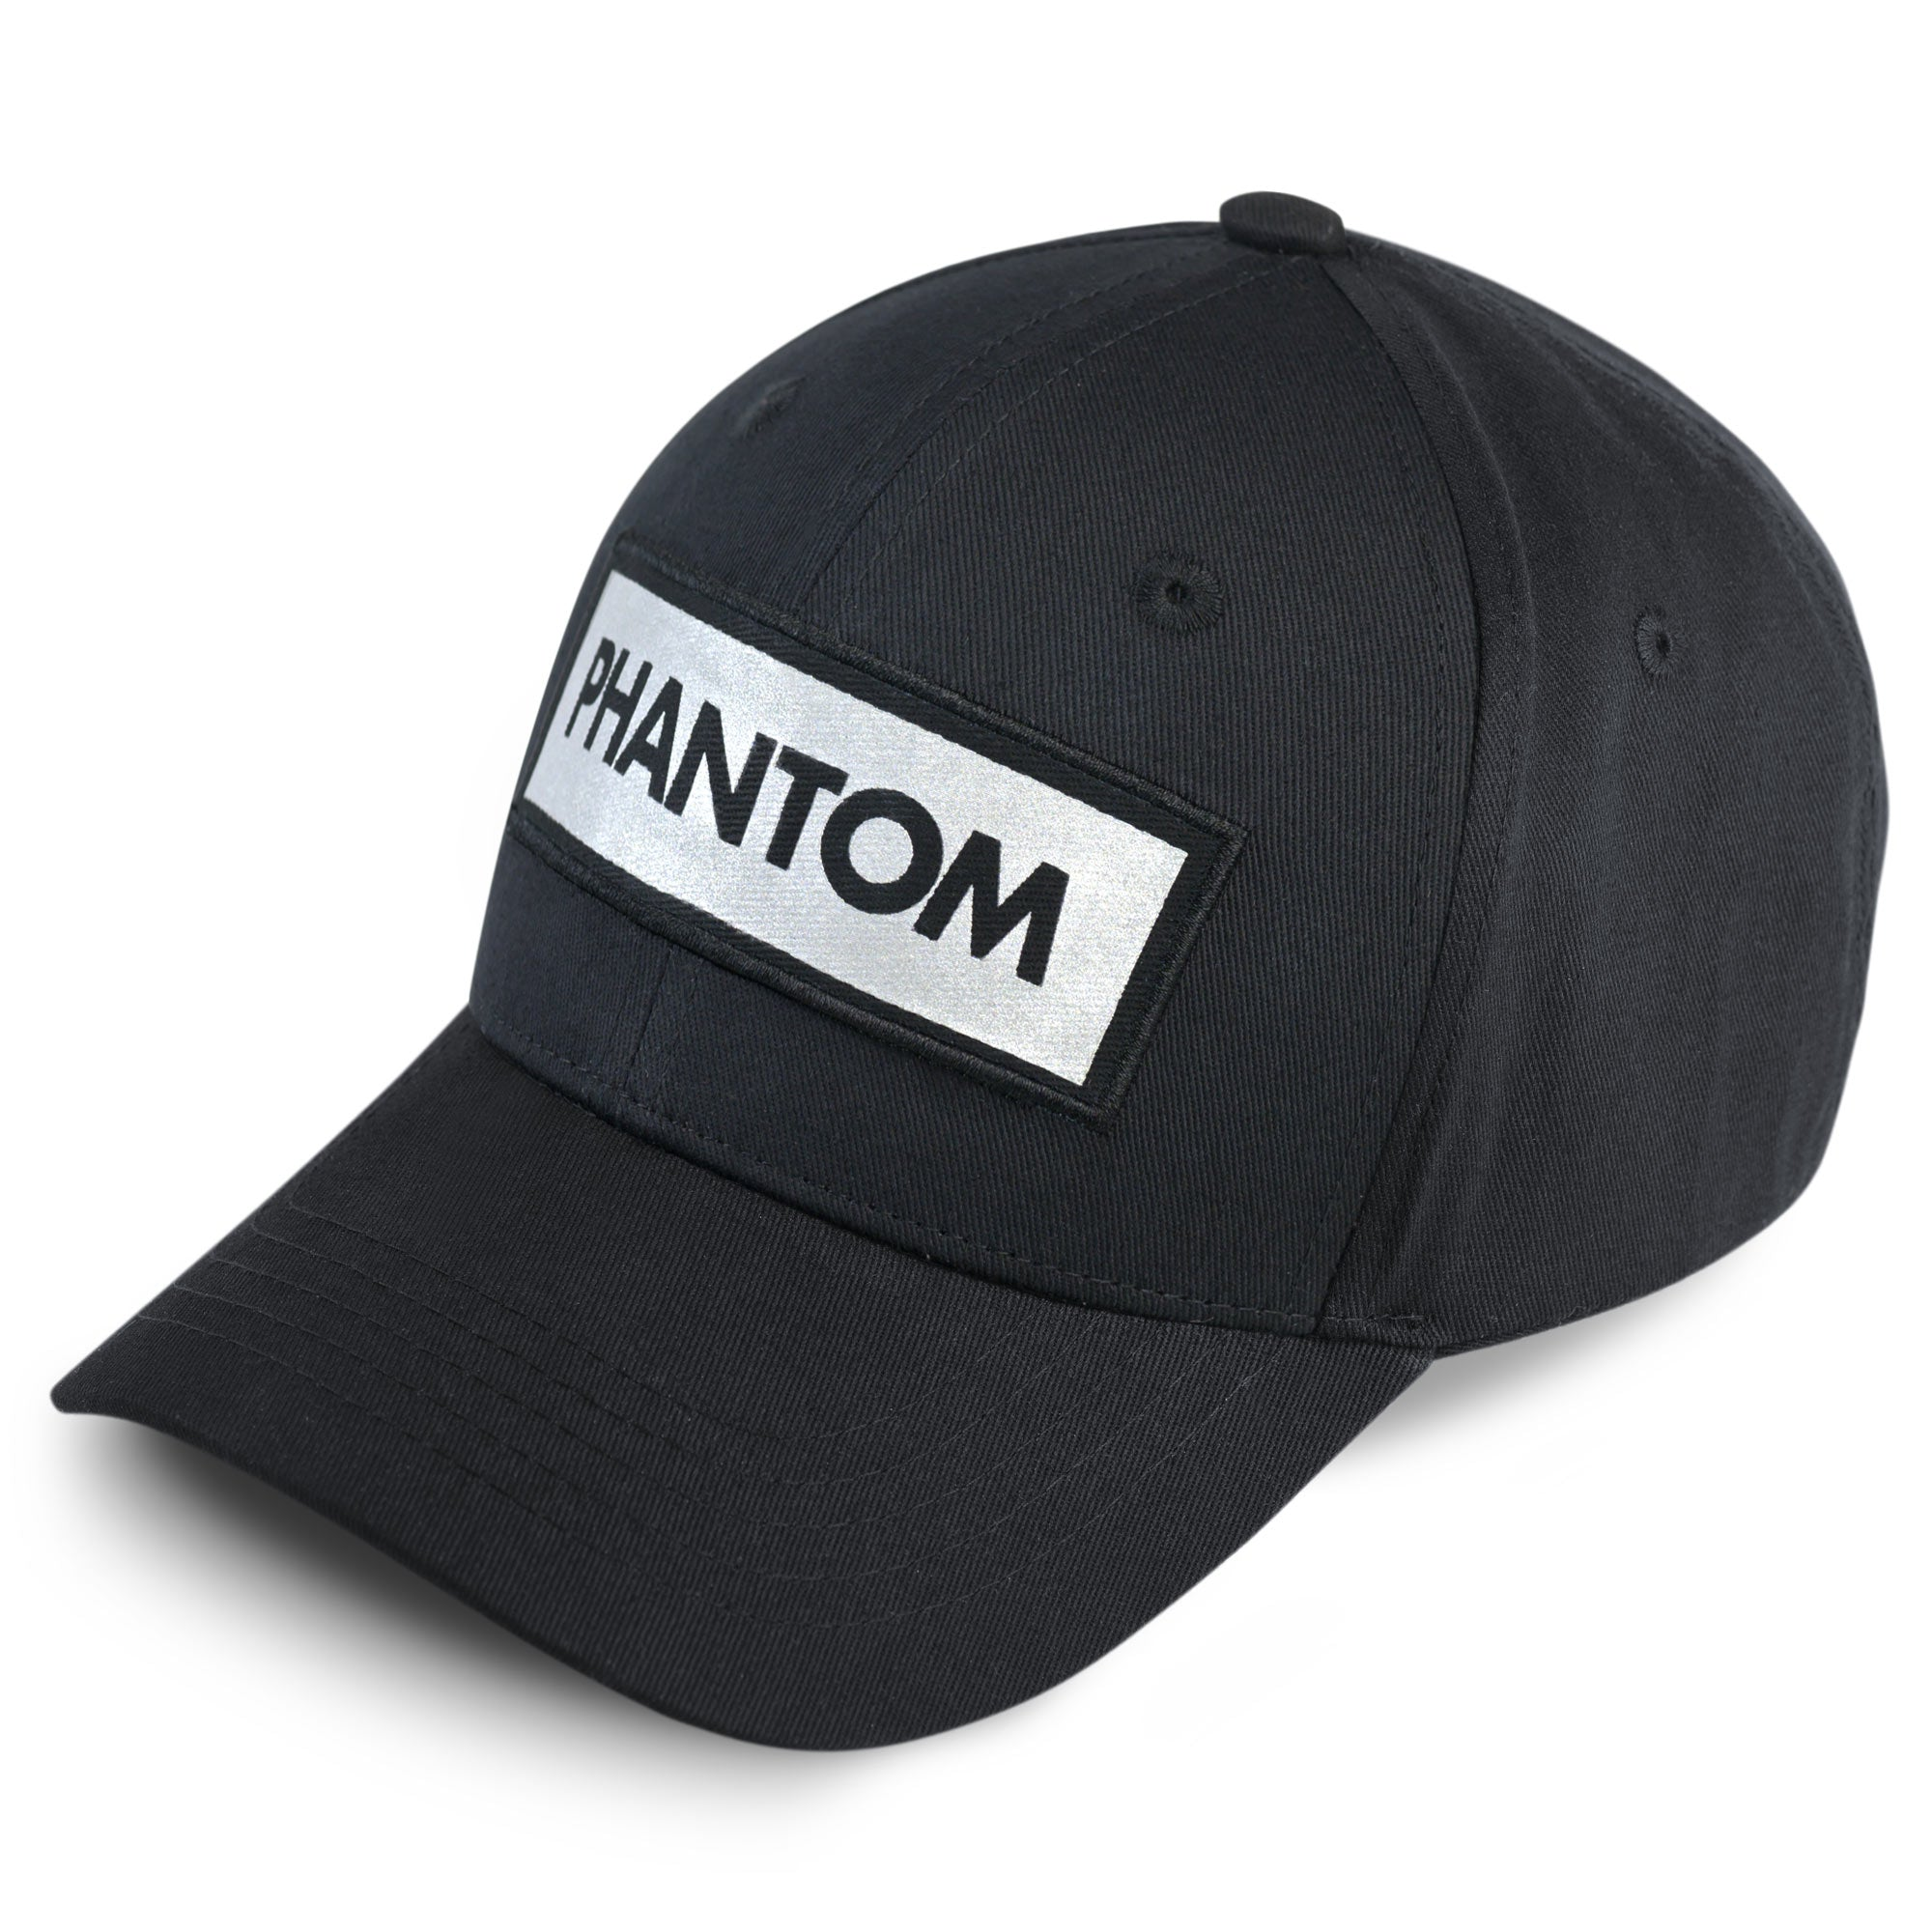 Cap Laser - PHANTOM ATHLETICS